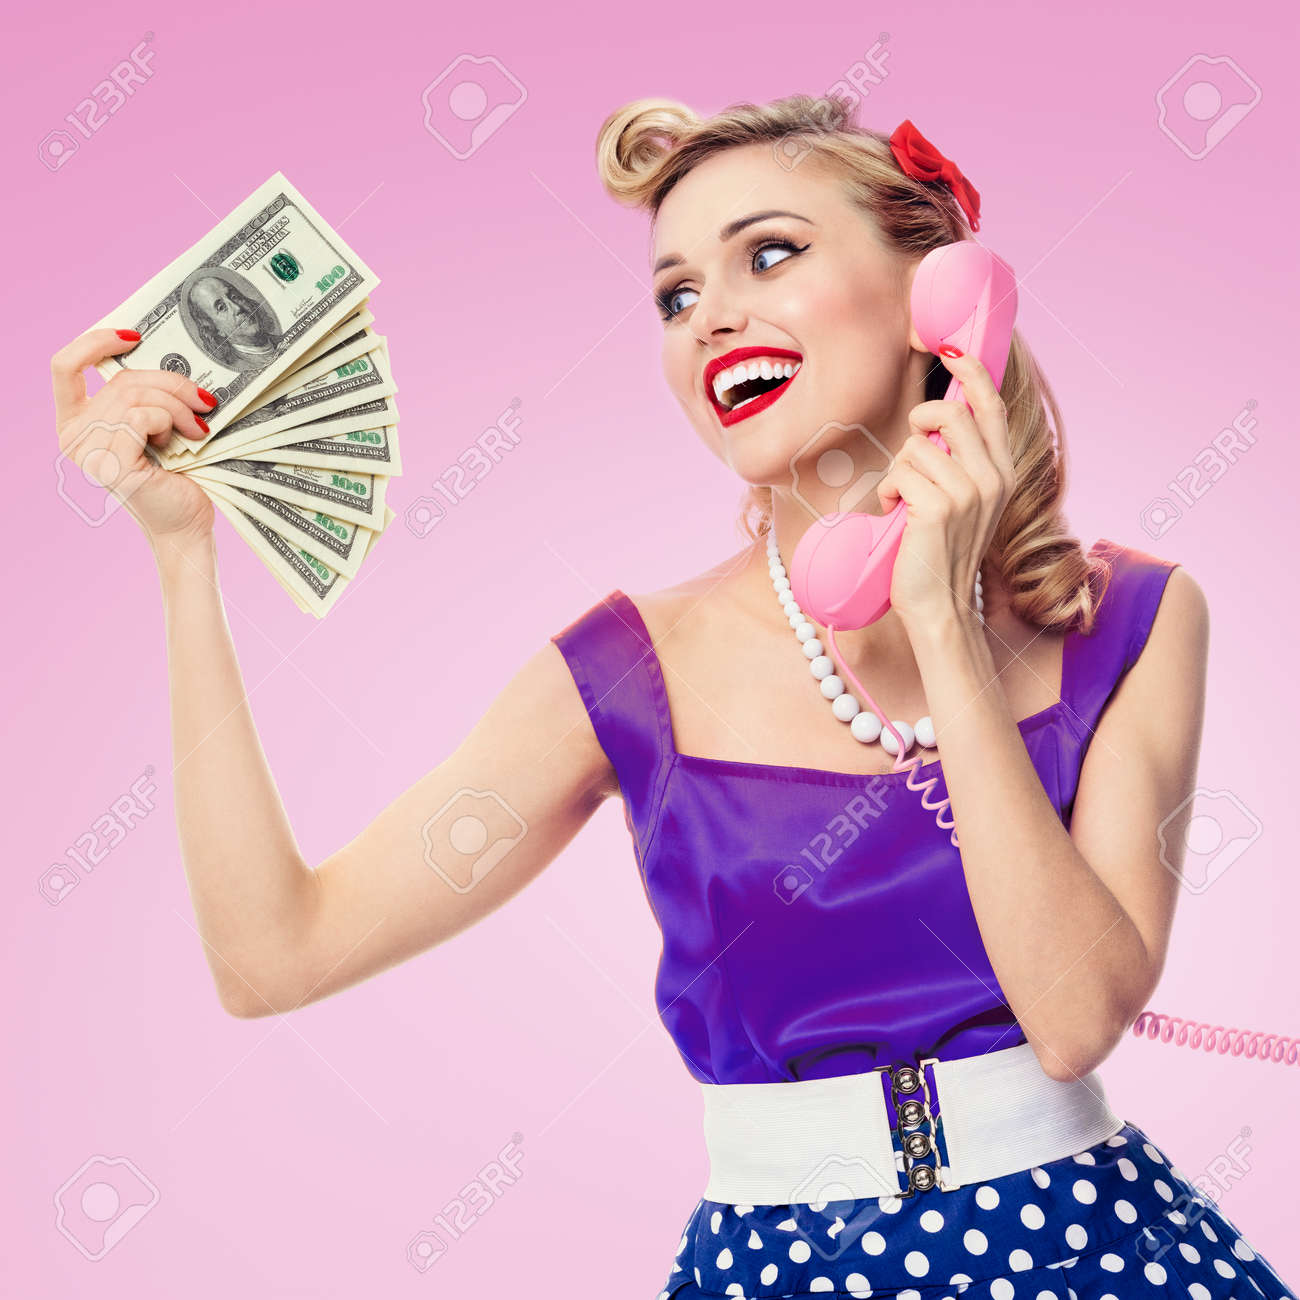 Image of happy woman with money, talking on phone, pin-up style dress in polka dot, over pink background. Caucasian blond model posing in retro fashion and vintage studio shoot. - 172447146